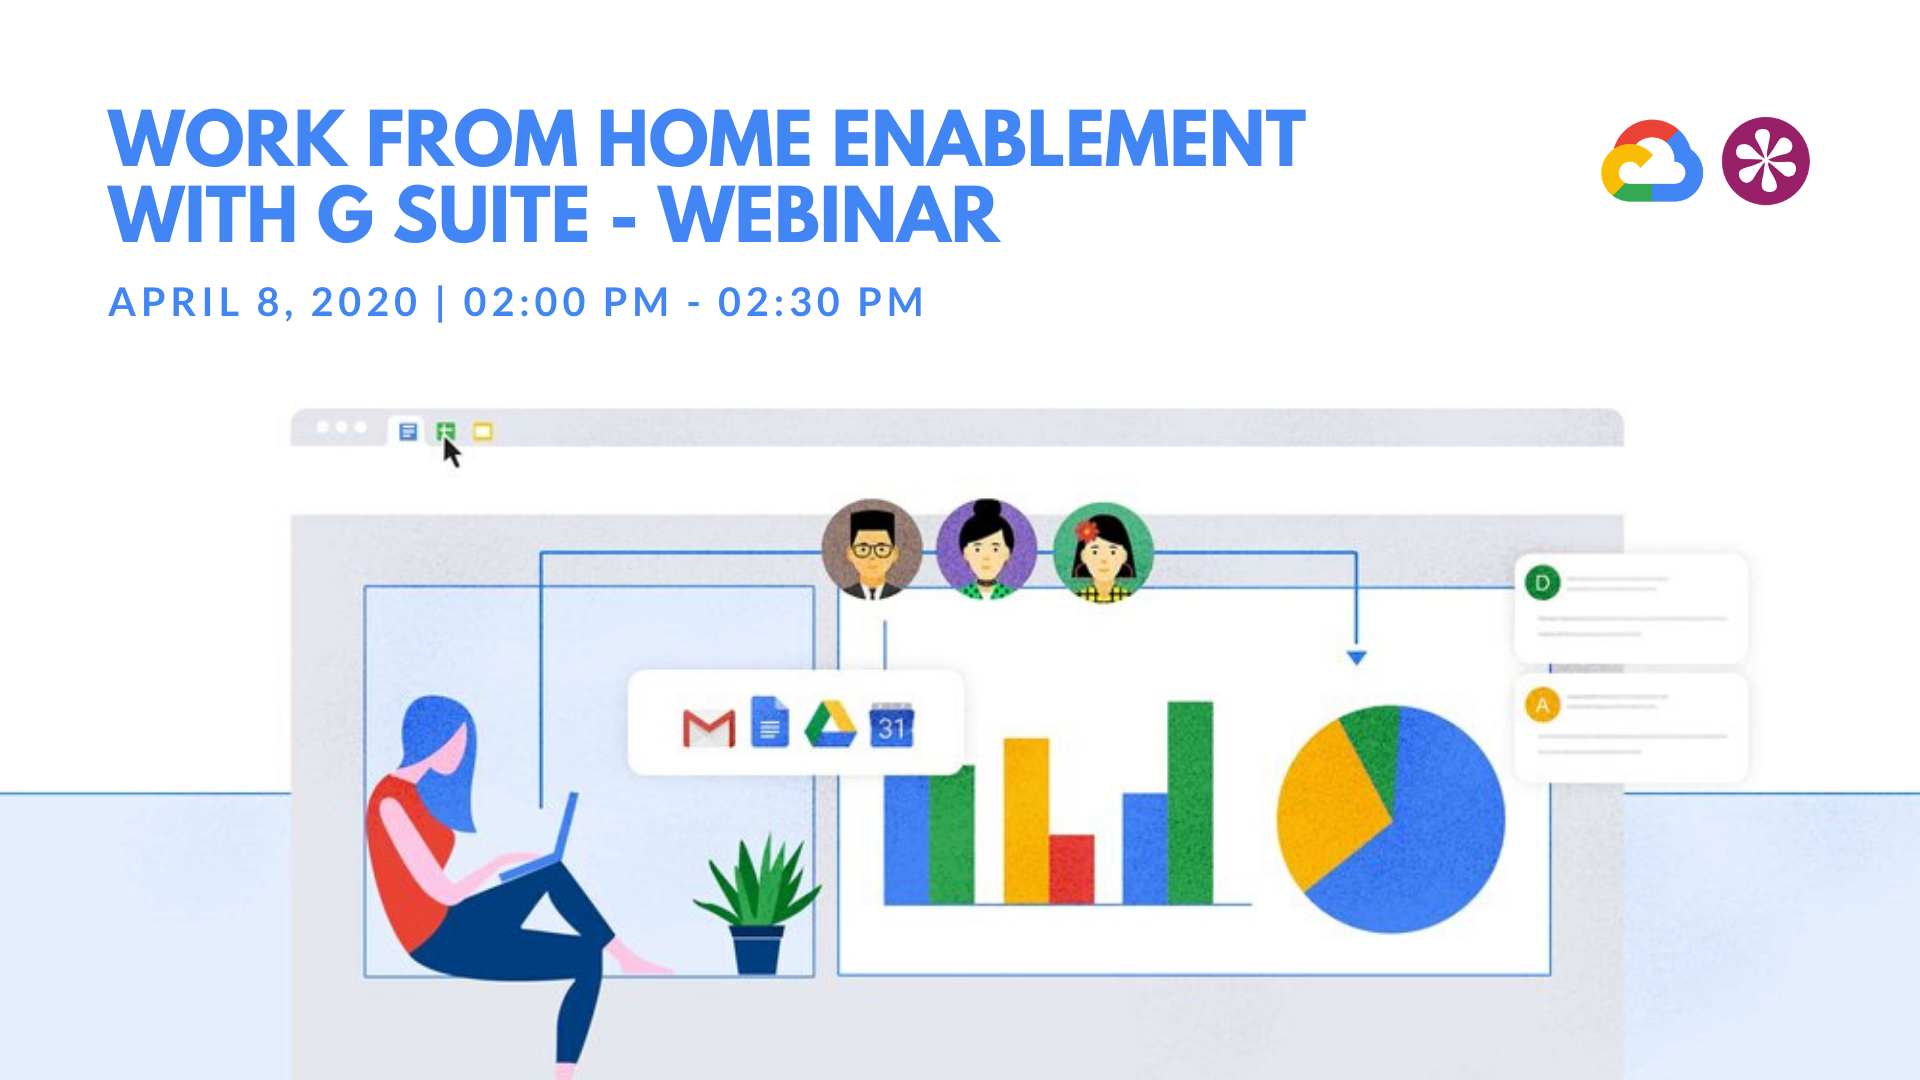 T08-04-20 Work from Home enablement with G Suite (Webinar) - thumbnail (1)